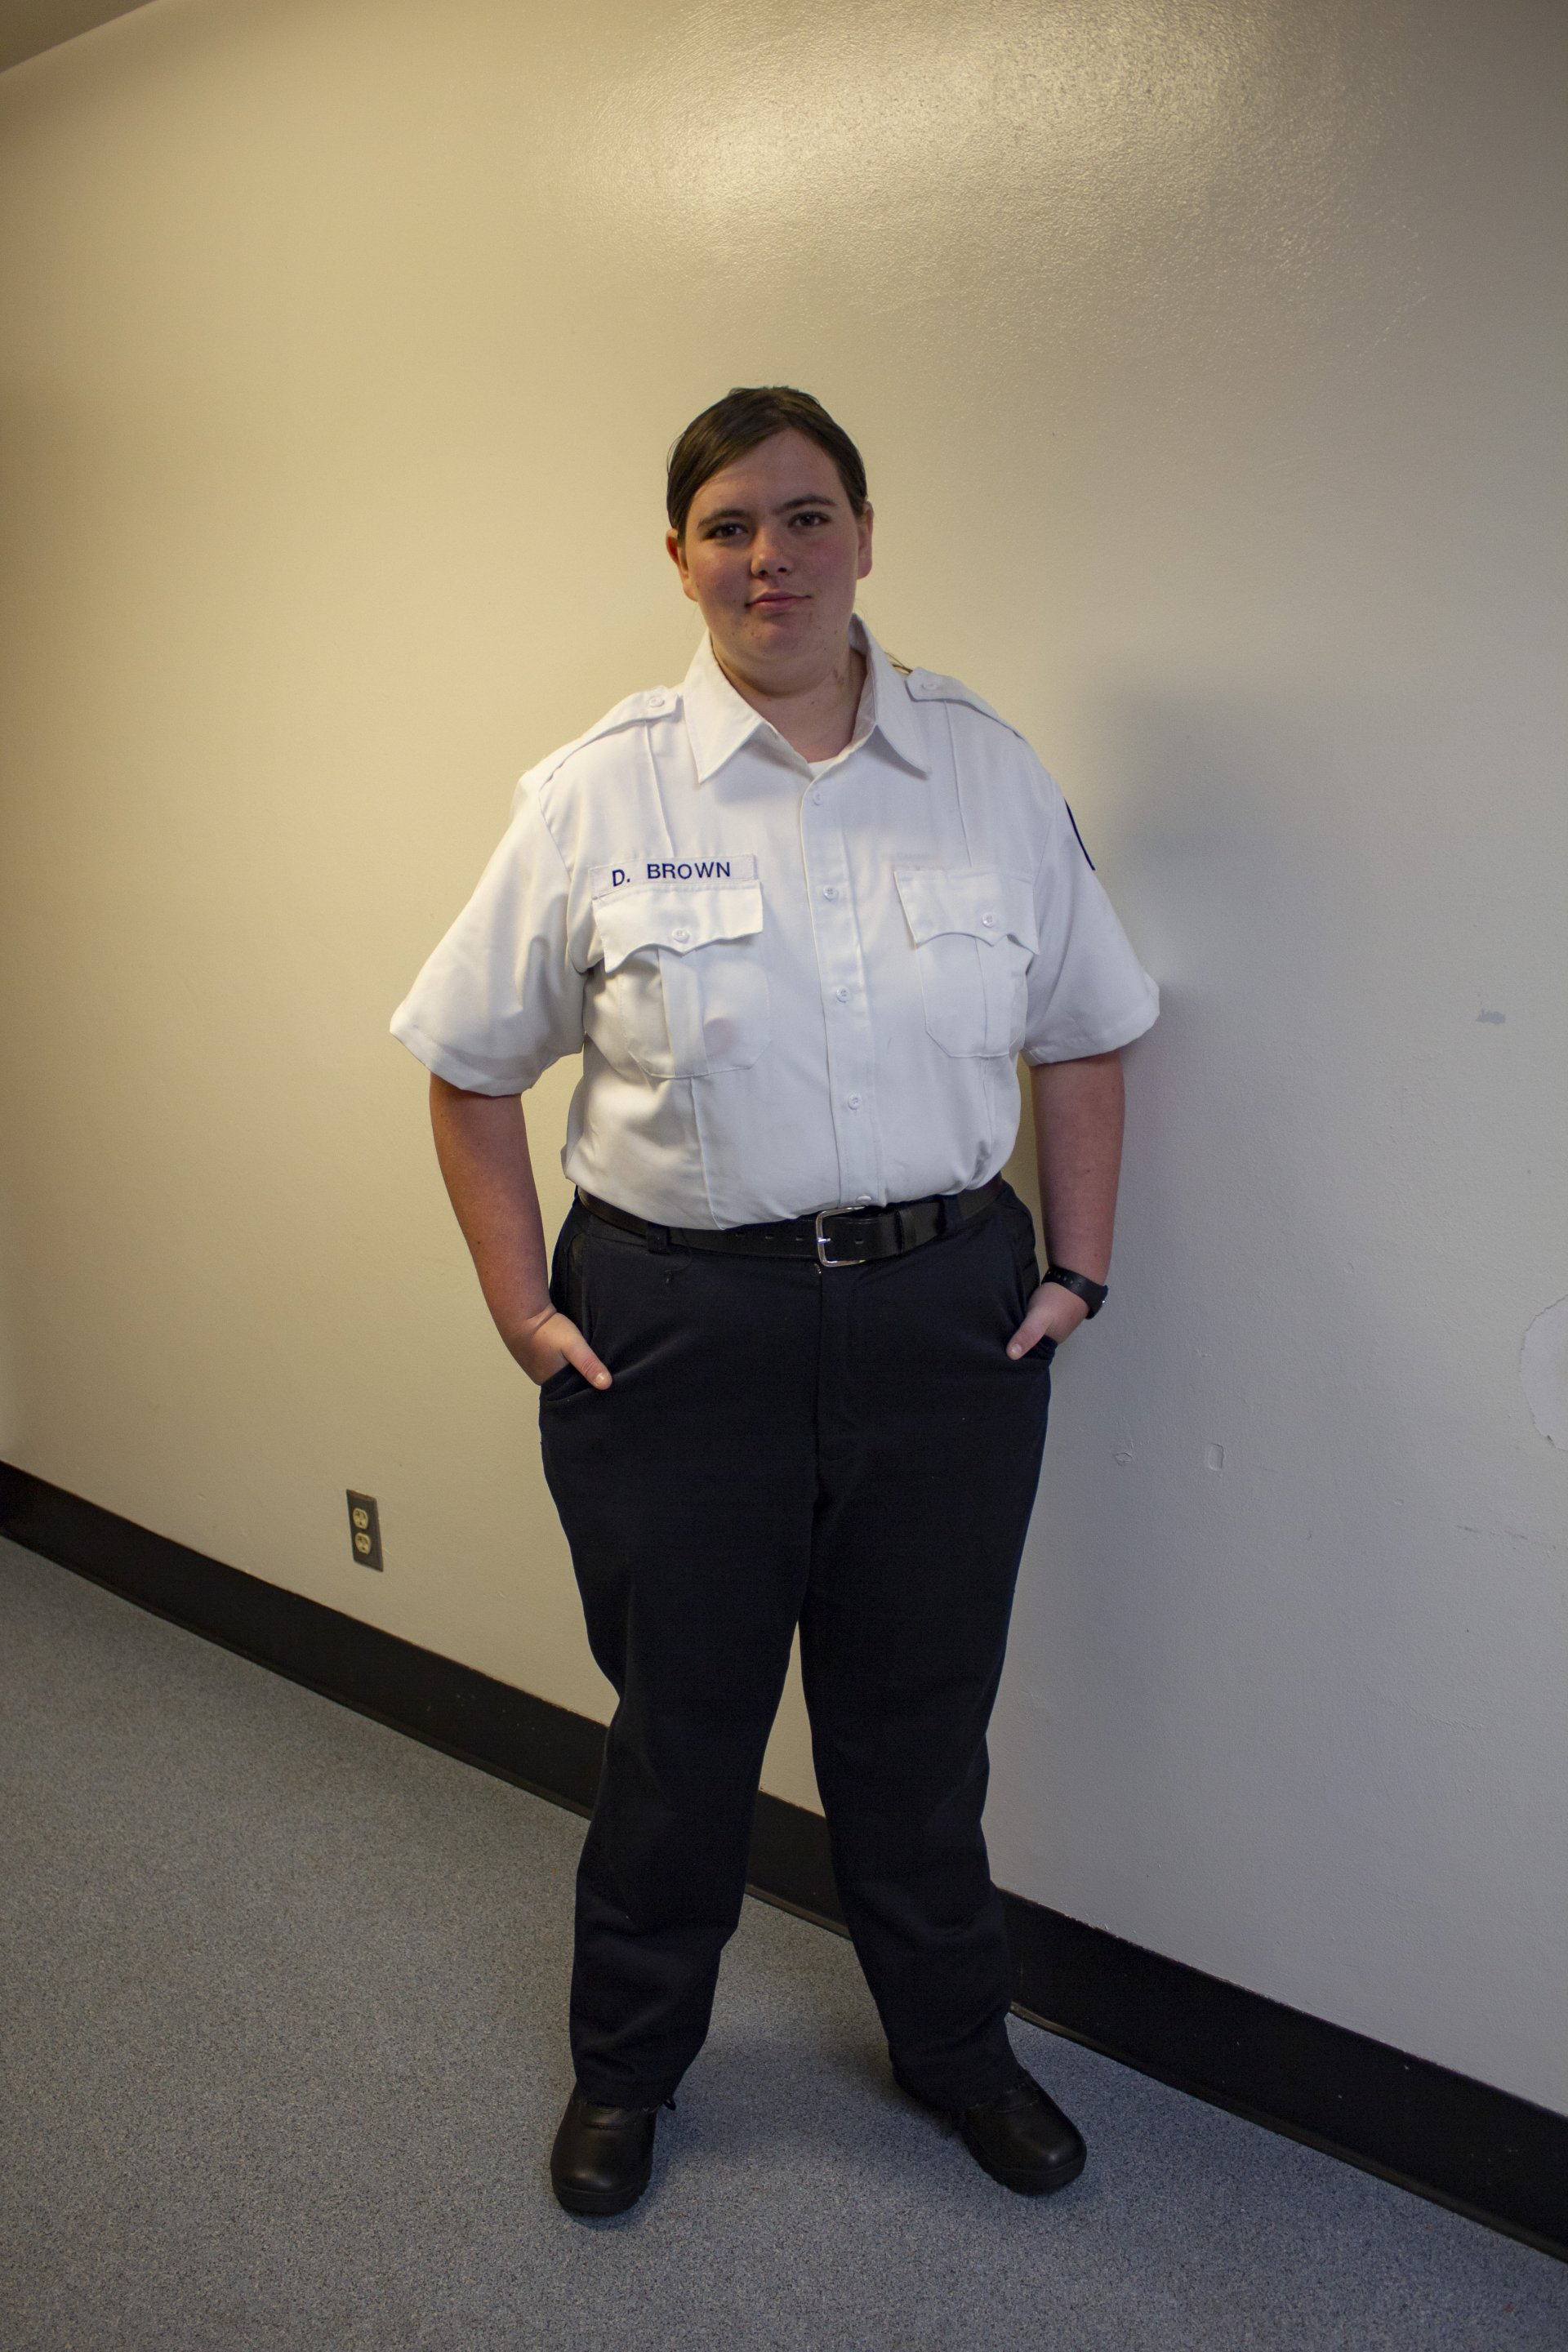 Danielle Brown in her Emergency Medical Technician uniform. | Photo by Ross Milne